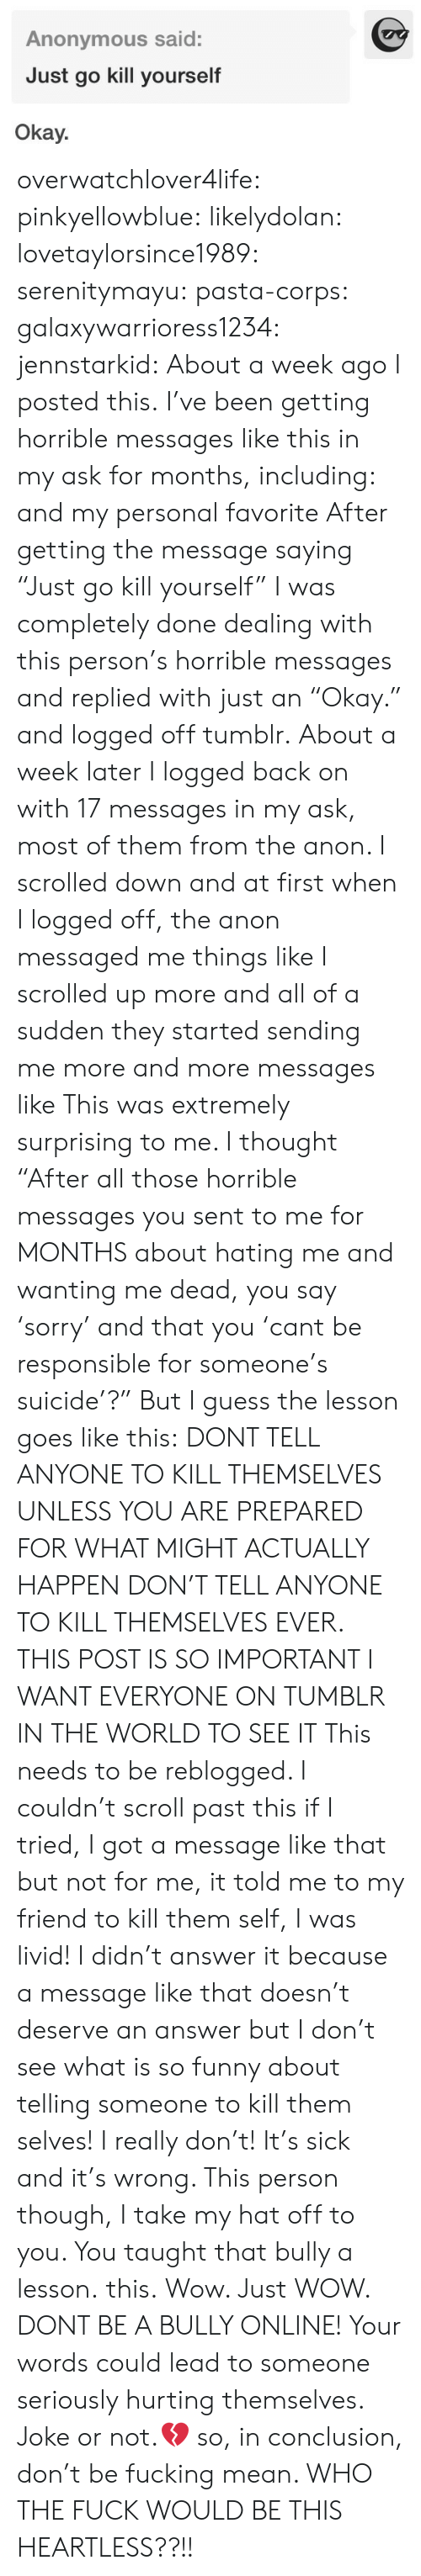 "kill yourself: Anonymous said:  Just go kill yourself  Okay. overwatchlover4life:  pinkyellowblue:  likelydolan:  lovetaylorsince1989:  serenitymayu:  pasta-corps:  galaxywarrioress1234:  jennstarkid:  About a week ago I posted this. I've been getting horrible messages like this in my ask for months, including:  and my personal favorite After getting the message saying ""Just go kill yourself"" I was completely done dealing with this person's horrible messages and replied with just an ""Okay."" and logged off tumblr. About a week later I logged back on with 17 messages in my ask, most of them from the anon. I scrolled down and at first when I logged off, the anon messaged me things like I scrolled up more and all of a sudden they started sending me more and more messages like This was extremely surprising to me. I thought ""After all those horrible messages you sent to me for MONTHS about hating me and wanting me dead, you say 'sorry' and that you 'cant be responsible for someone's suicide'?"" But I guess the lesson goes like this: DONT TELL ANYONE TO KILL THEMSELVES UNLESS YOU ARE PREPARED FOR WHAT MIGHT ACTUALLY HAPPEN   DON'T TELL ANYONE TO KILL THEMSELVES EVER.  THIS POST IS SO IMPORTANT I WANT EVERYONE ON TUMBLR IN THE WORLD TO SEE IT  This needs to be reblogged. I couldn't scroll past this if I tried, I got a message like that but not for me, it told me to my friend to kill them self, I was livid! I didn't answer it because a message like that doesn't deserve an answer but I don't see what is so funny about telling someone to kill them selves! I really don't! It's sick and it's wrong. This person though, I take my hat off to you. You taught that bully a lesson.  this.   Wow. Just WOW. DONT BE A BULLY ONLINE! Your words could lead to someone seriously hurting themselves. Joke or not.💔  so, in conclusion, don't be fucking mean.   WHO THE FUCK WOULD BE THIS HEARTLESS??!!"